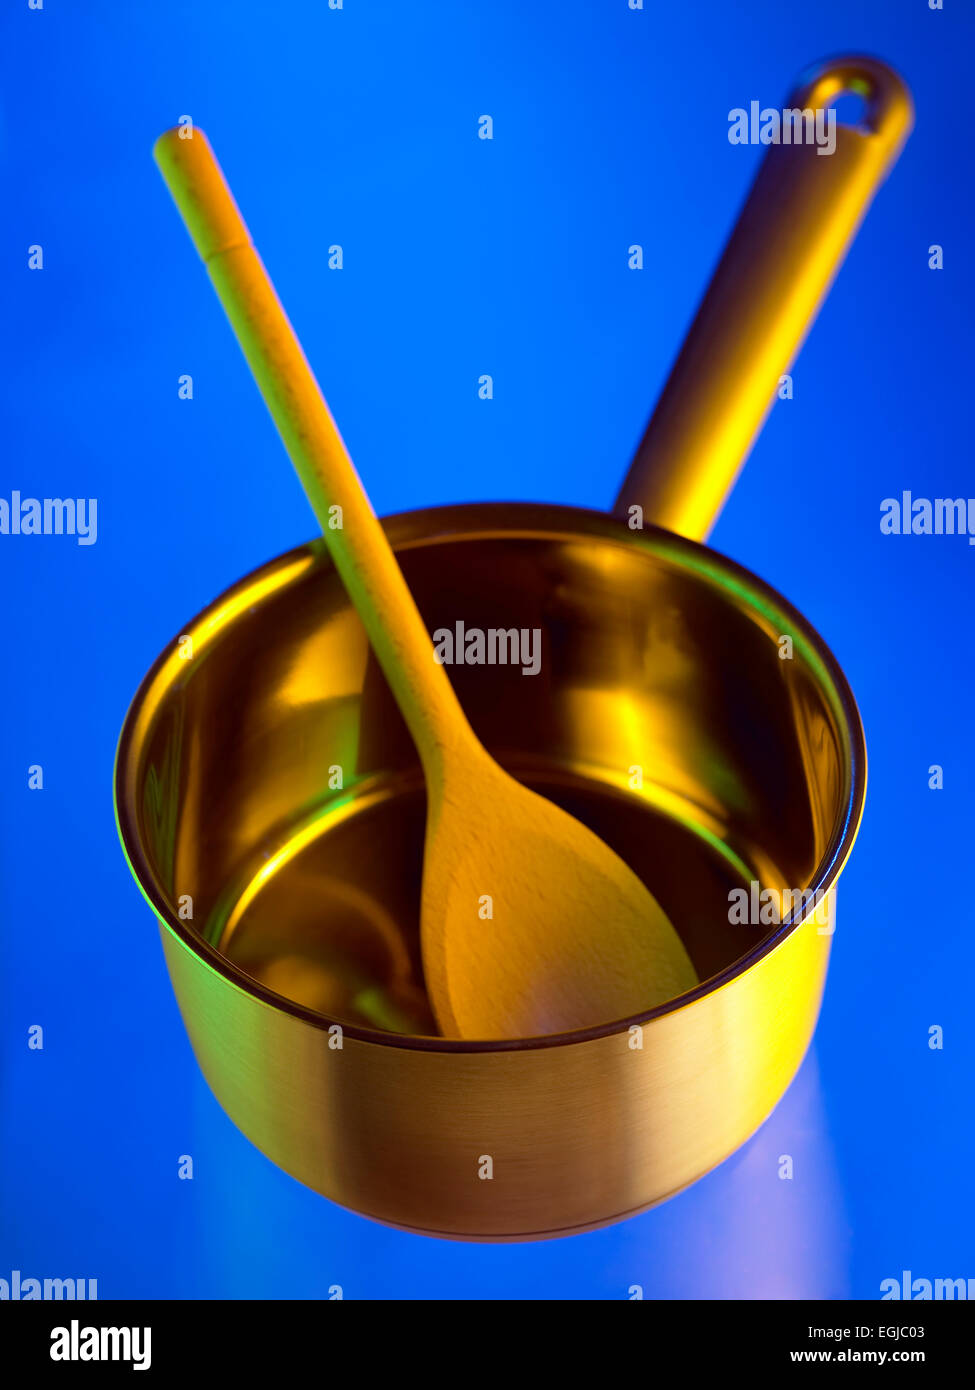 kitchen equipment: pan and spoon - Stock Image